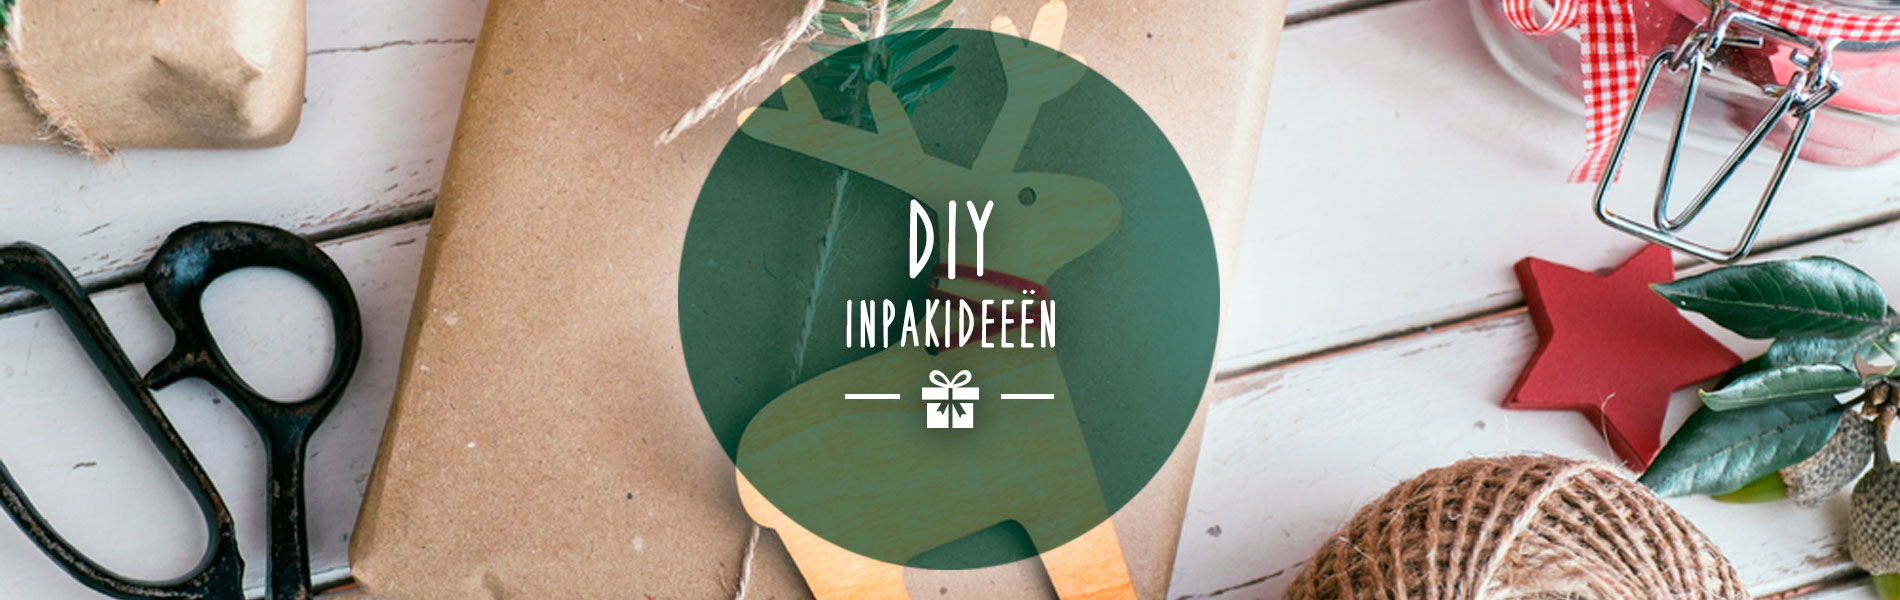 Christmas-DIY_Top-bnr_NL